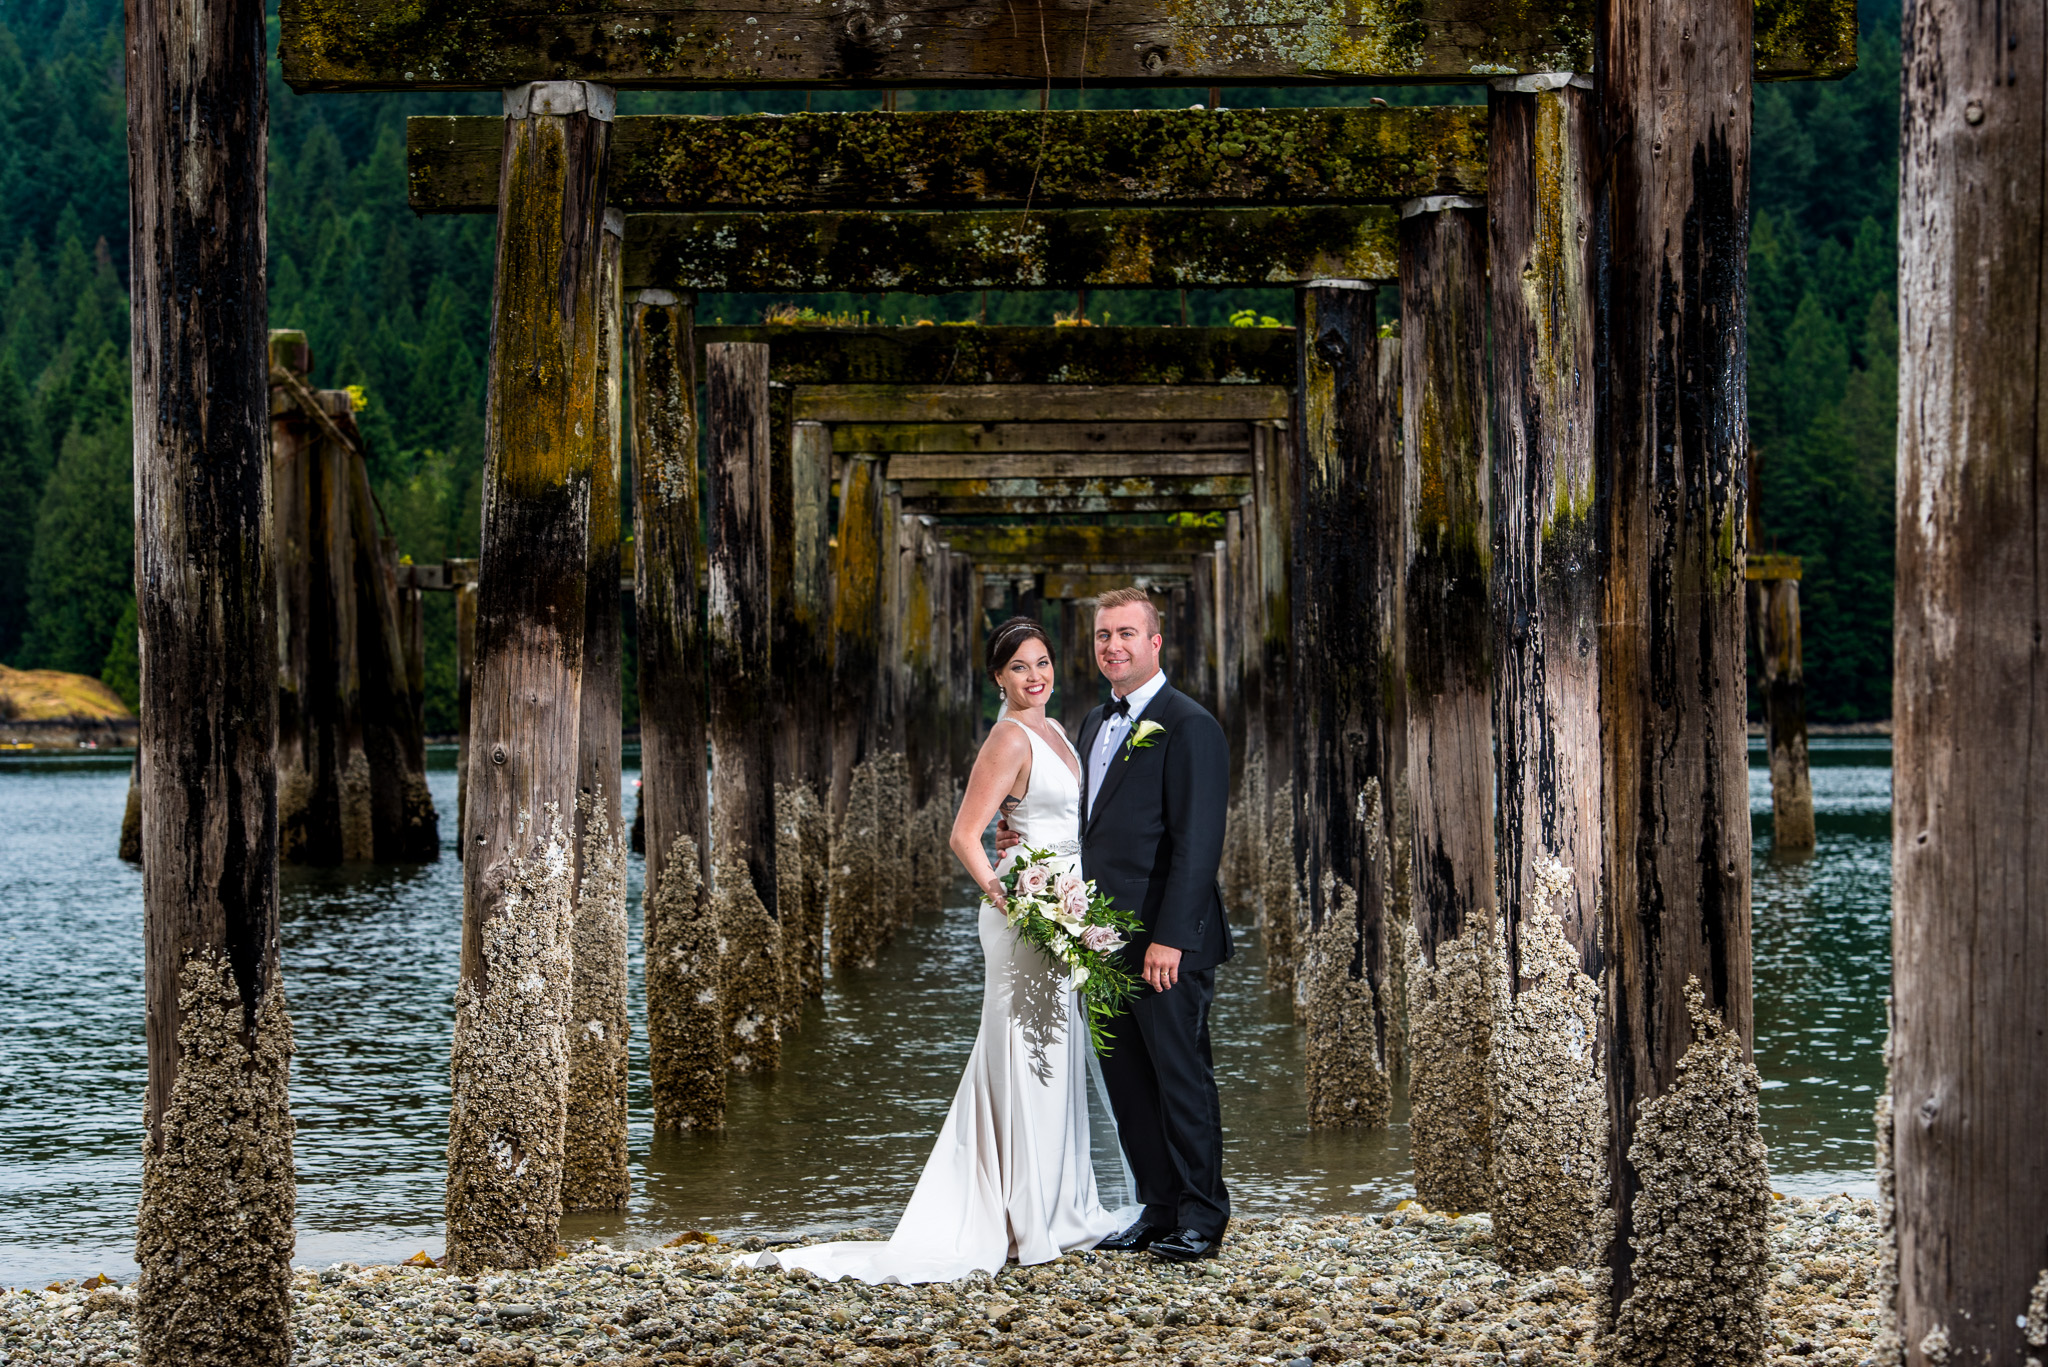 victoria-wedding-photographers-westwood-plateau-wedding-42.jpg